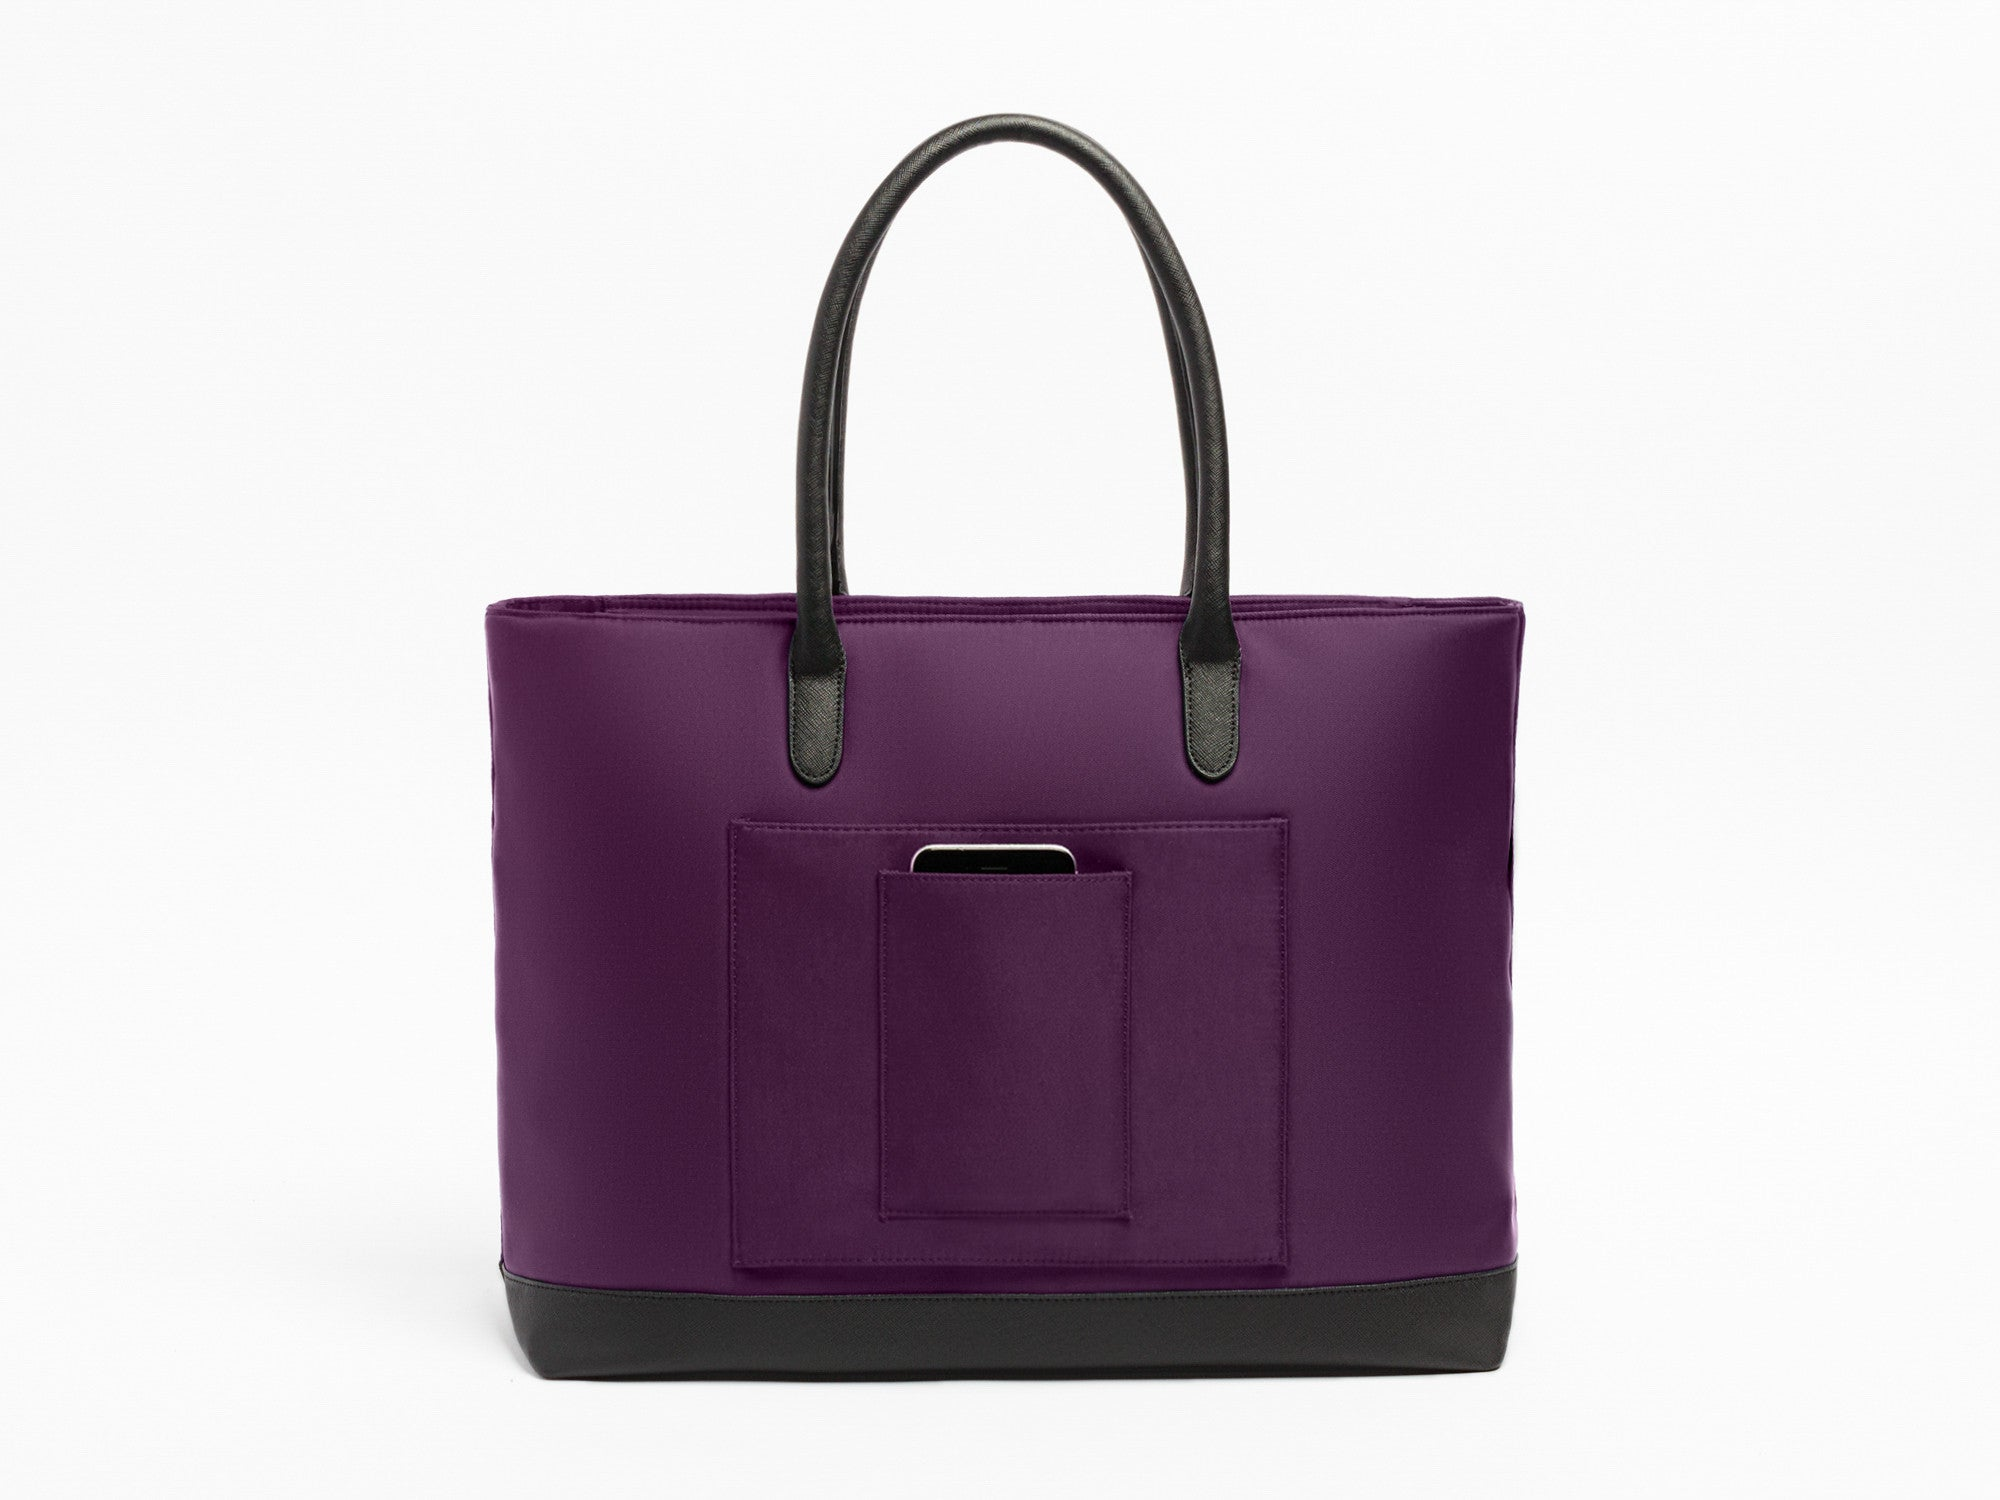 THE ISABEL LEGEND TOTE